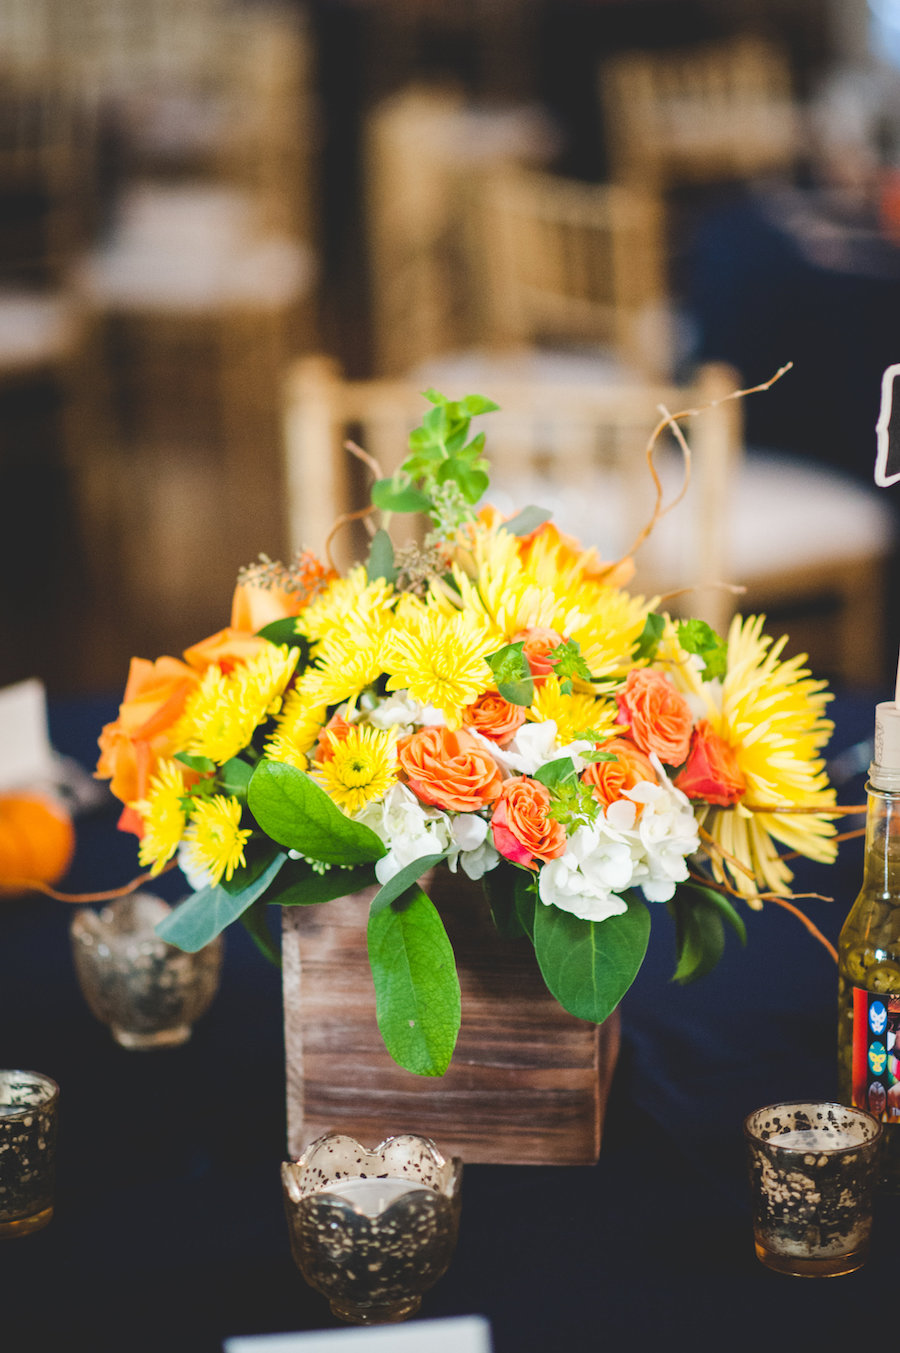 Rustic, Elegant Wedding Table Centerpieces with Orange, Yellow and Green Florals in Wooden Boxes